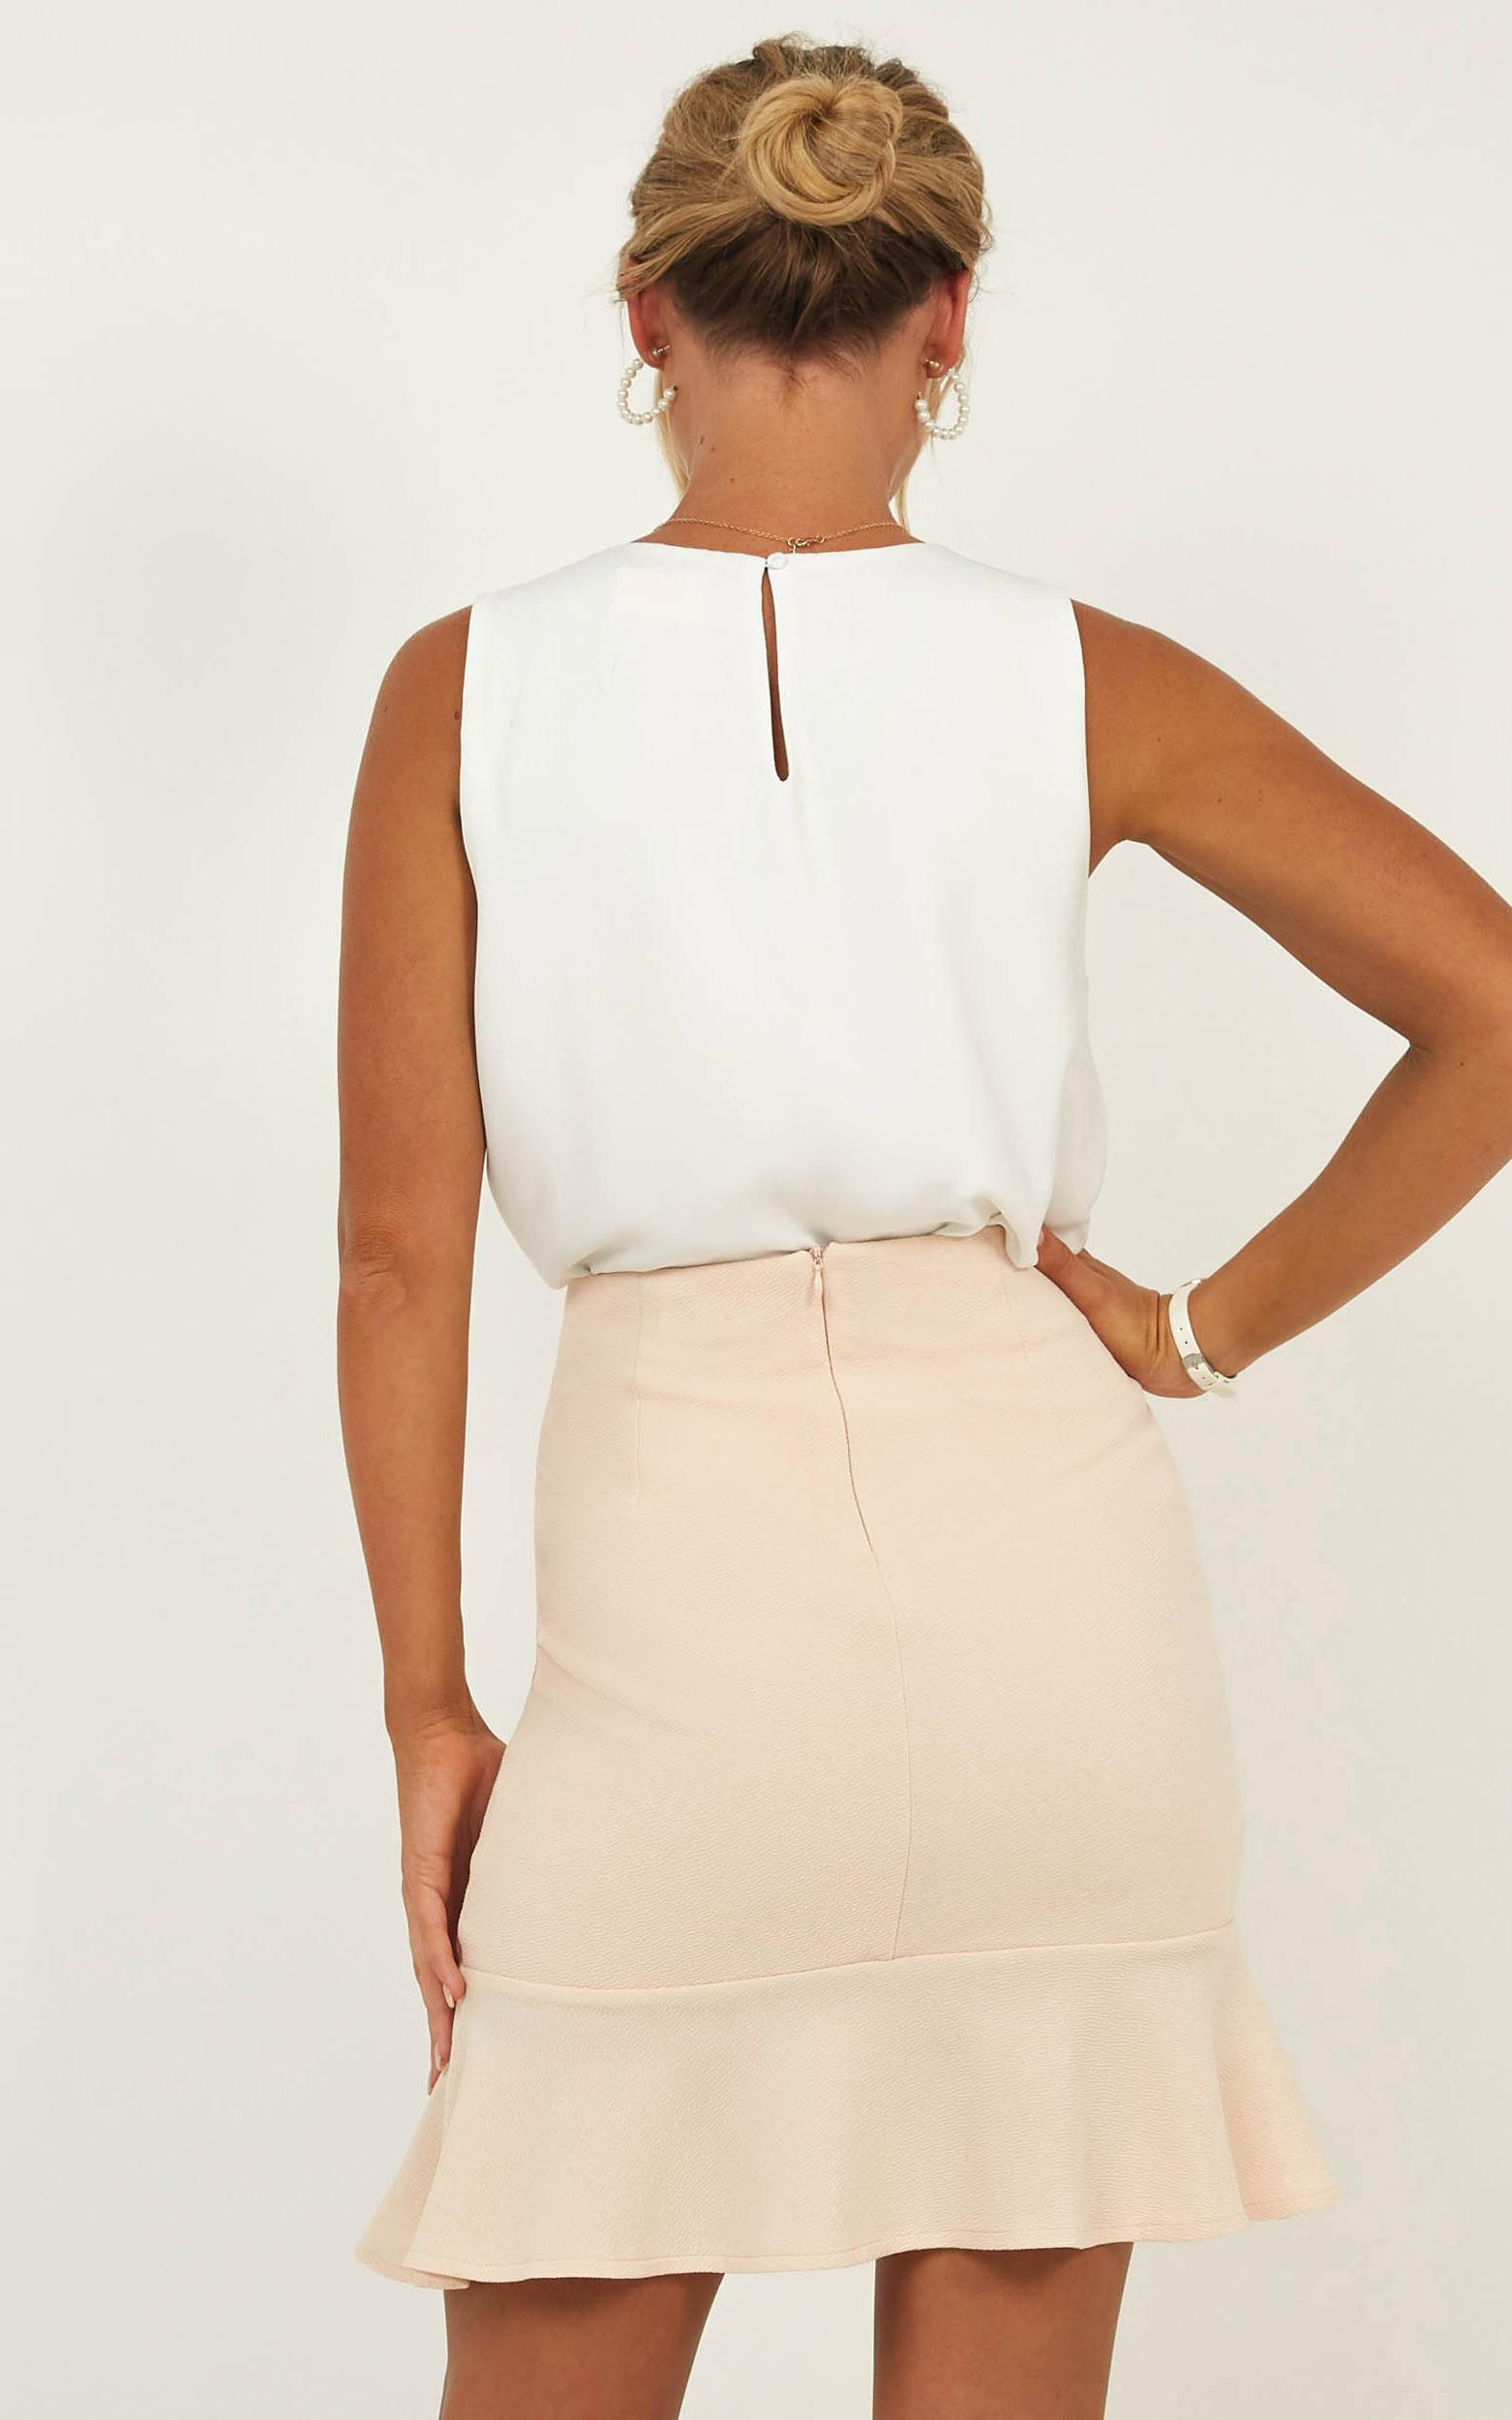 Smooth Talker Skirt in nude - 20 (XXXXL), Beige, hi-res image number null